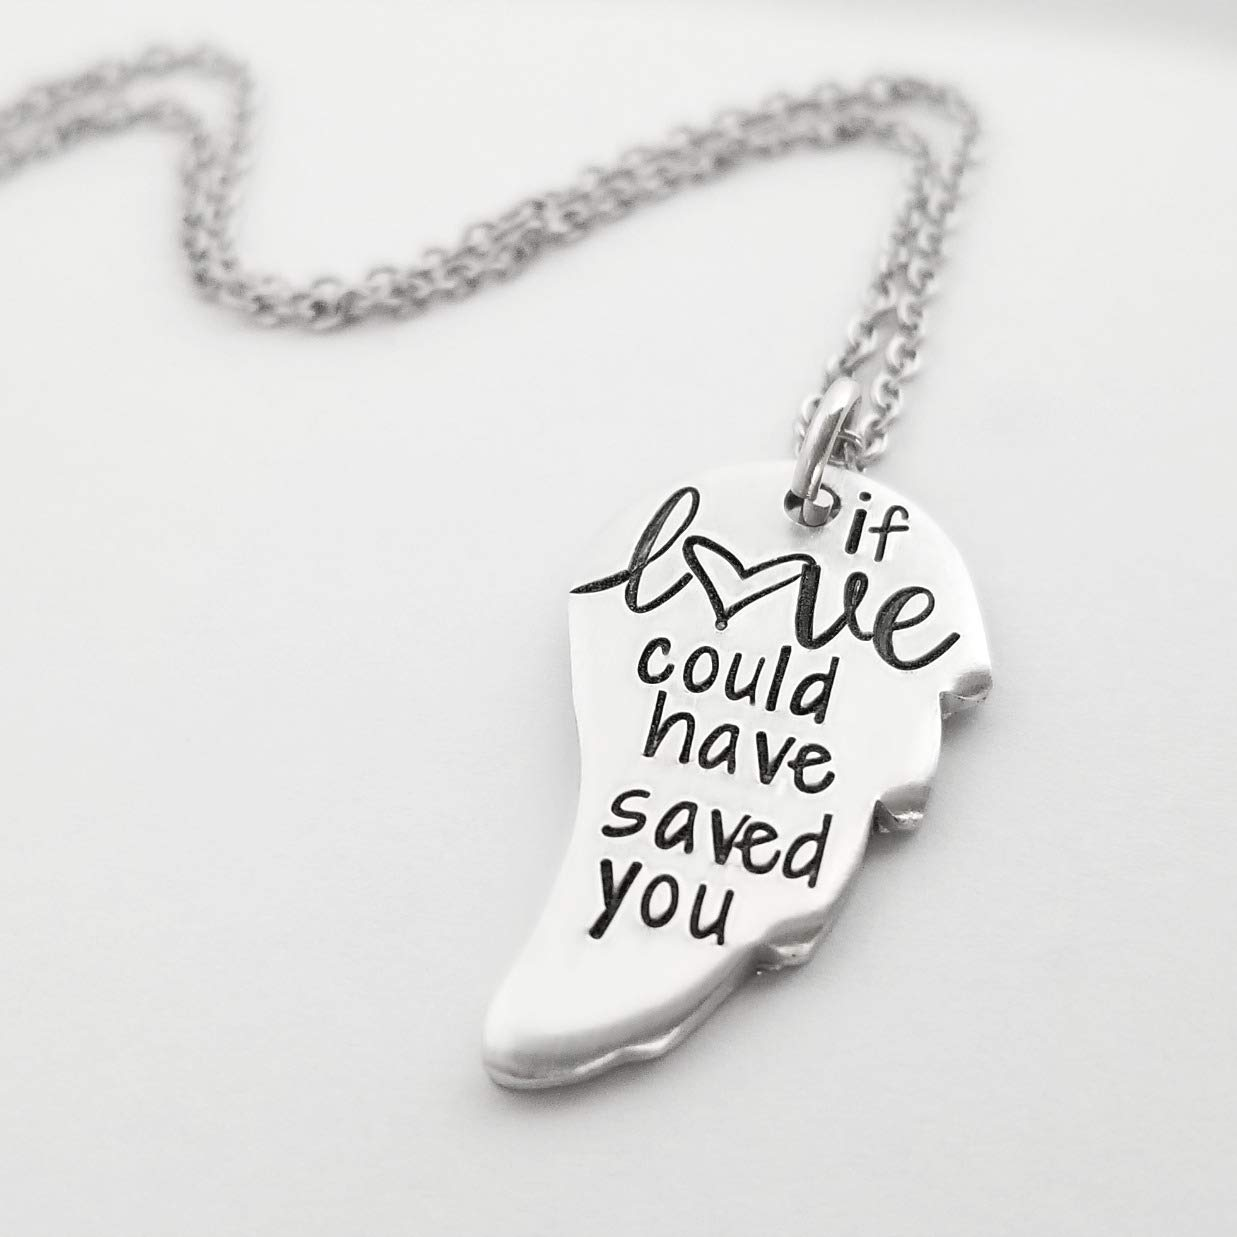 975bdde03 Get Quotations · angel wing necklace memorial gift if love could  remembrance jewelry loss of child pet father mother